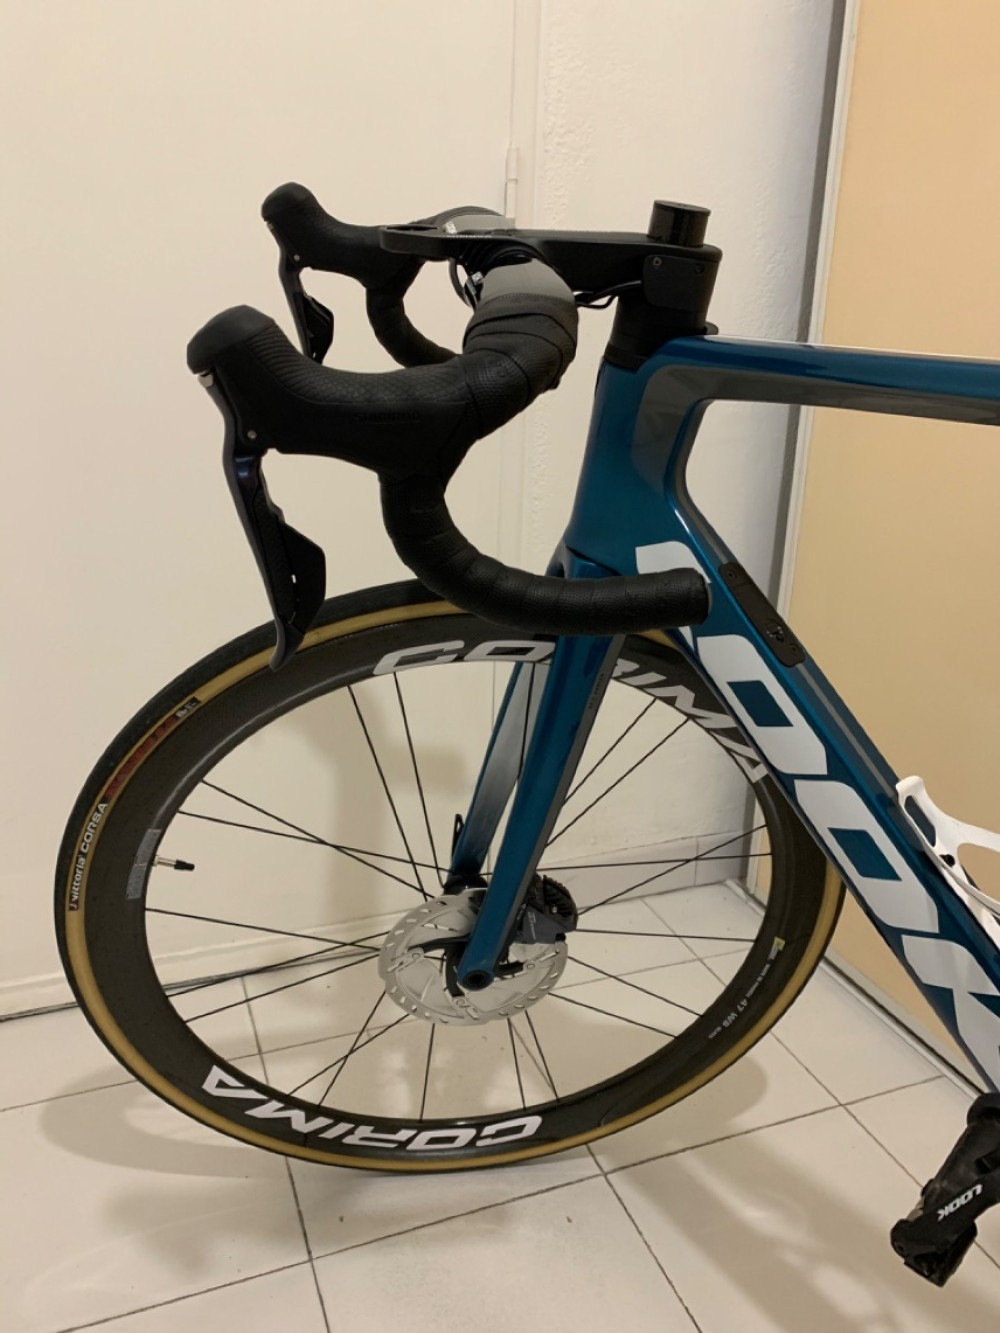 Rennvelo kaufen: LOOK 795 blade Rs disc Occasion